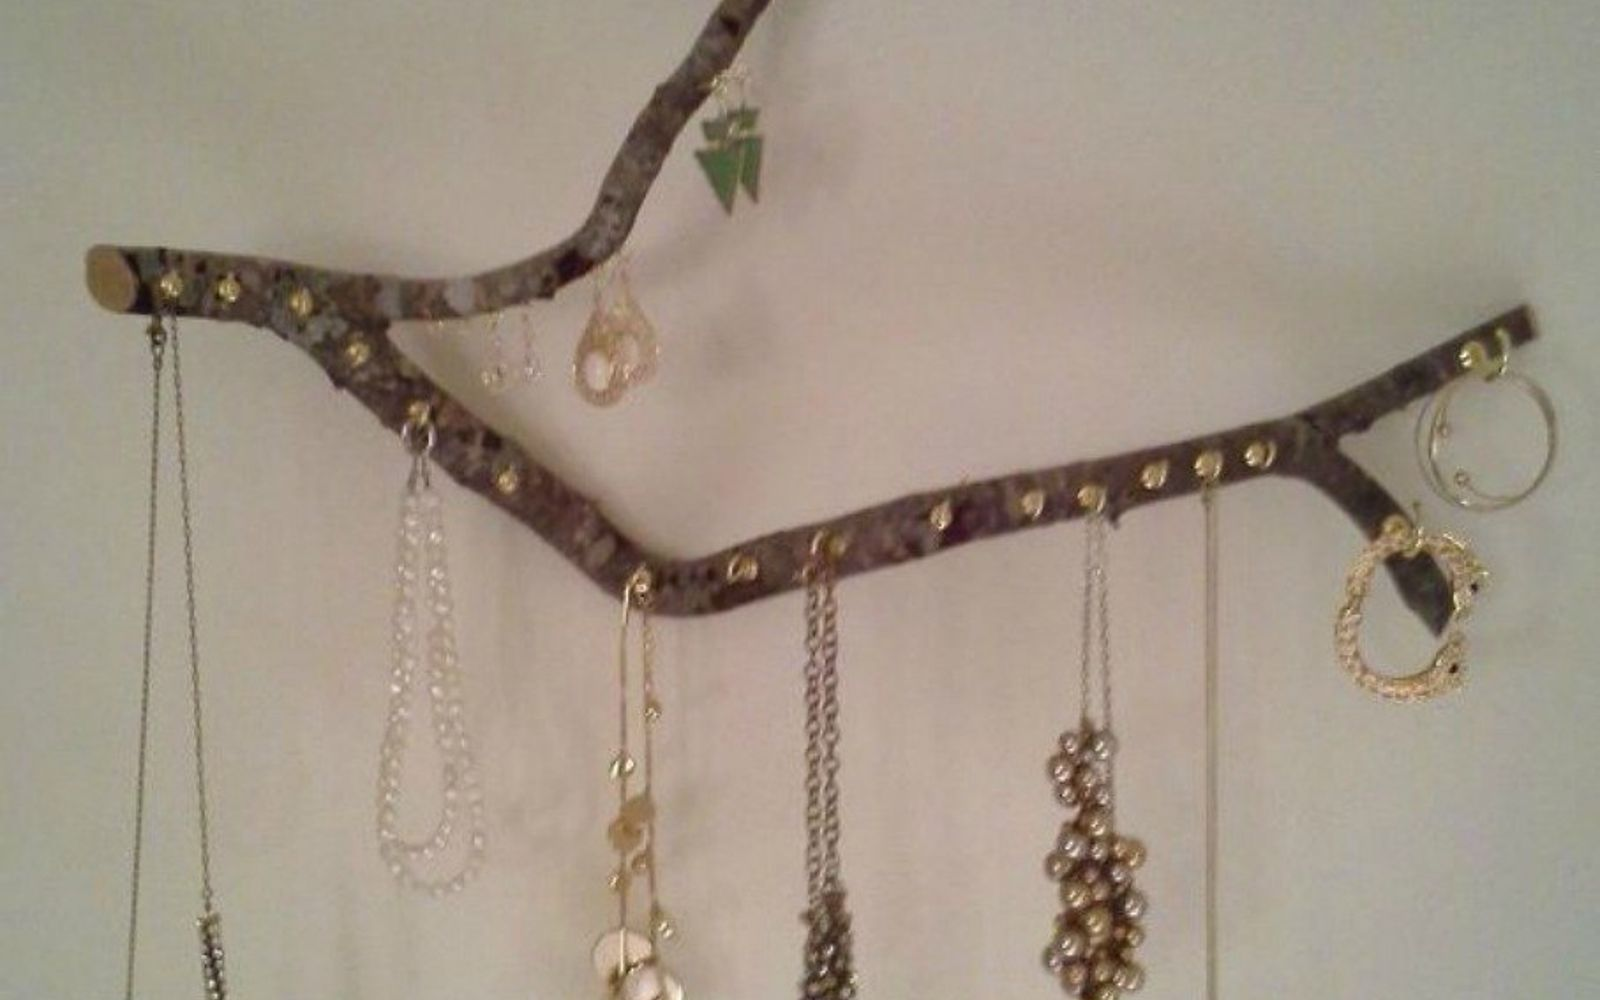 s 21 jewelry organizing ideas that are better than a jewelry box, organizing, This hanging wooden branch